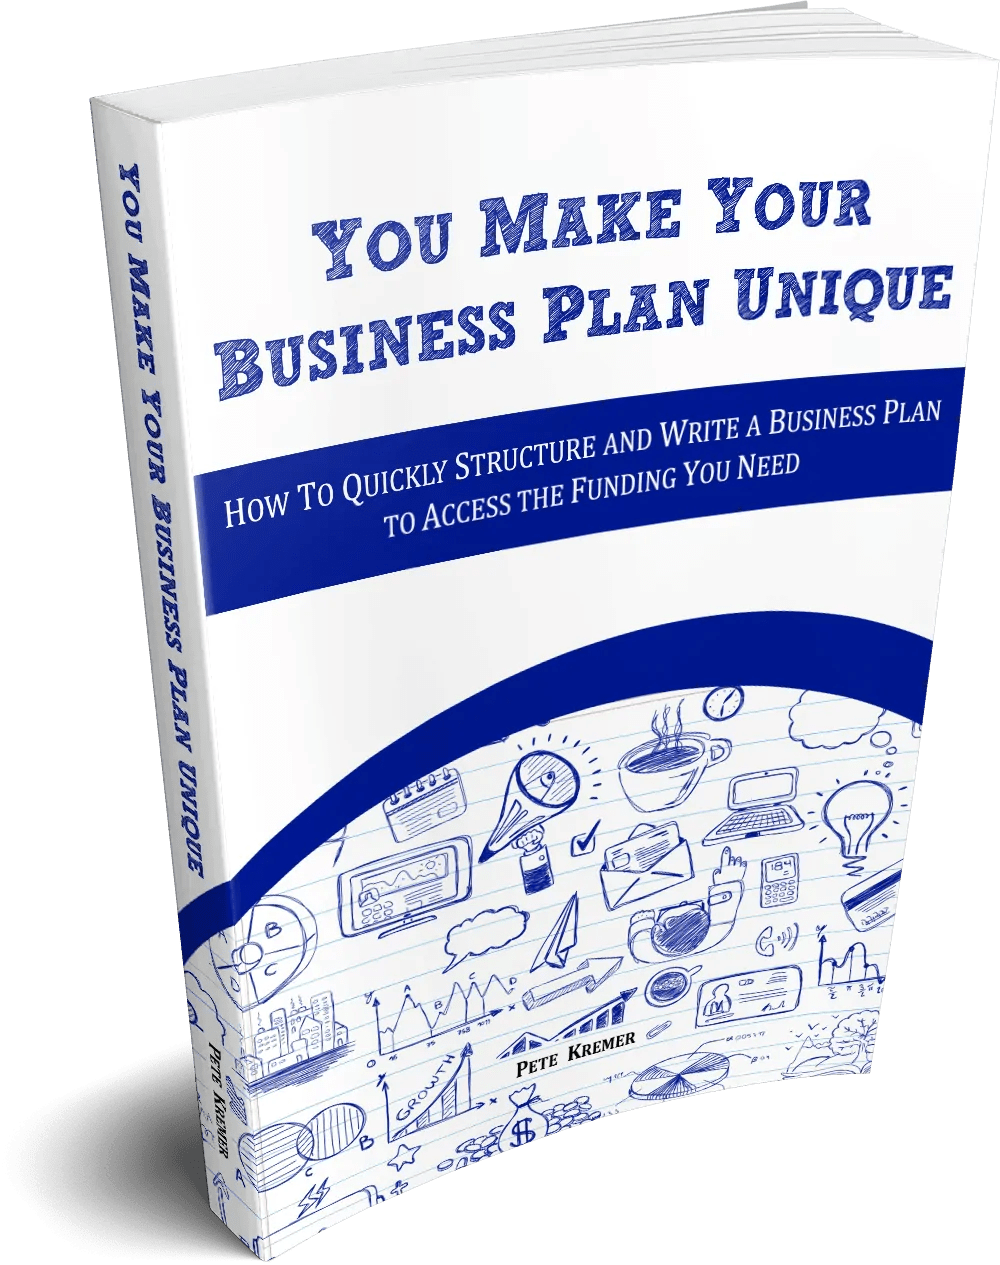 You Make Your Business Plan Unique (business plan book)